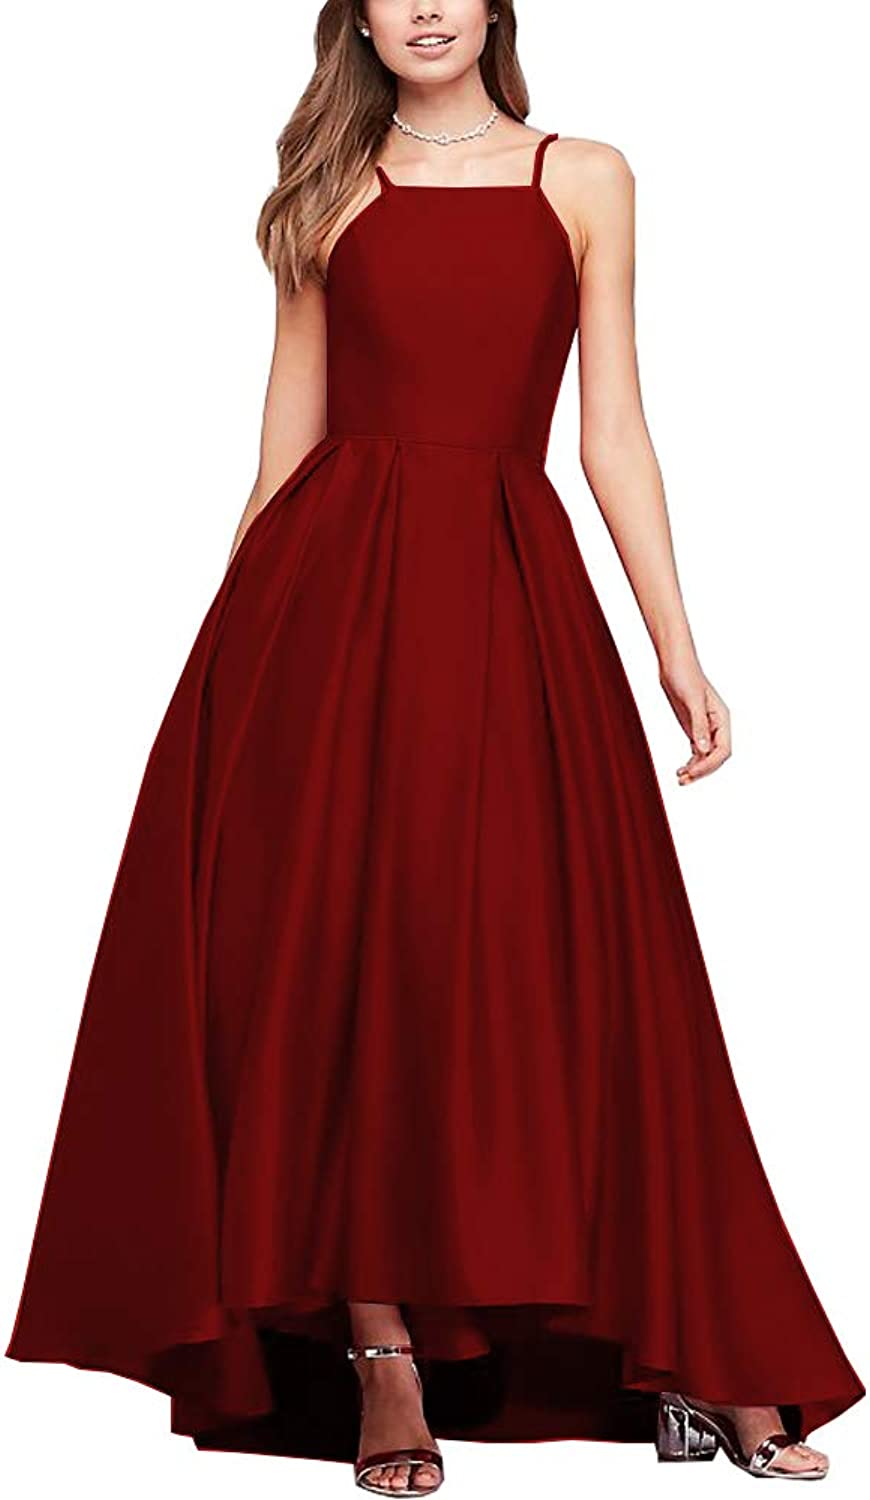 Now and Forever Womens Spaghetti Strap High Low Satin Prom Dresses Asymmetrical